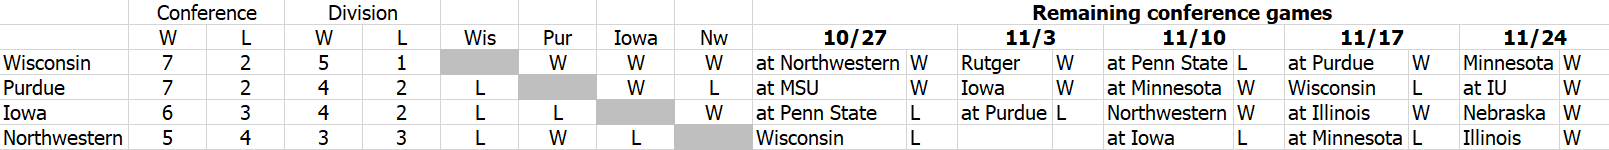 2018 Big Tenteen West - Conference Week 4 - probable finish.PNG